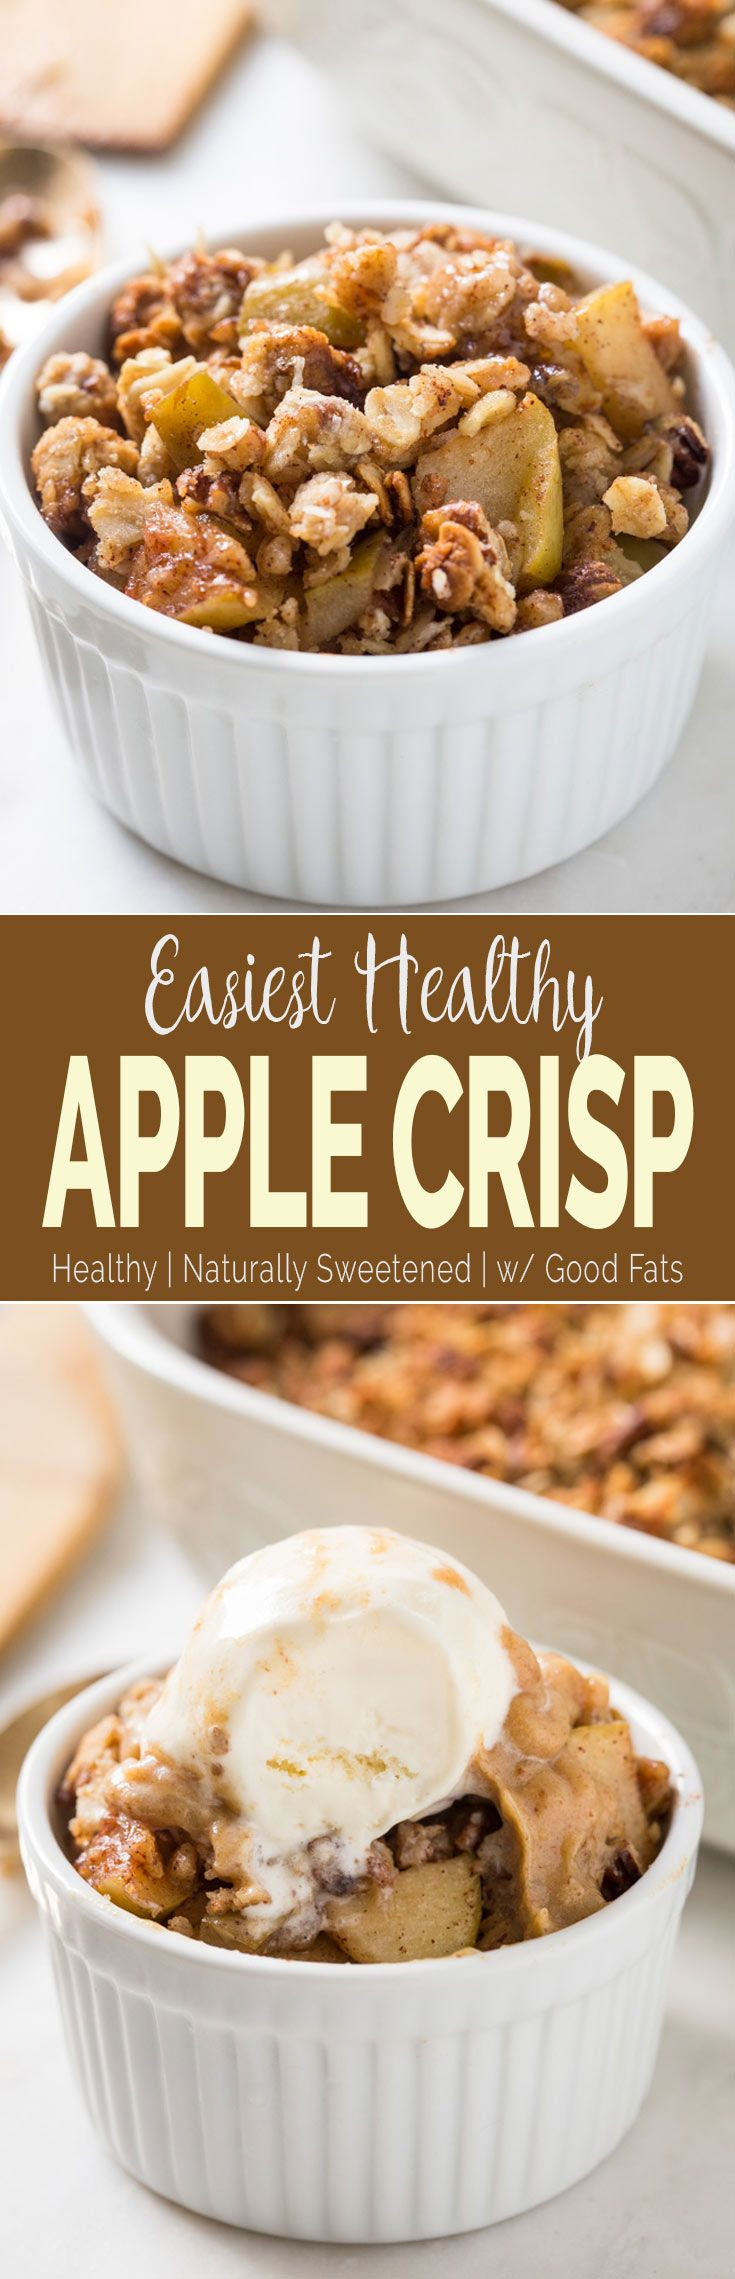 This easy and healthy apple crisp recipe is perfect for enjoying dessert guilt-free. No one will notice that it is skinny with no butter and white sugar. #healthyrecipes, #apple via @watchwhatueat